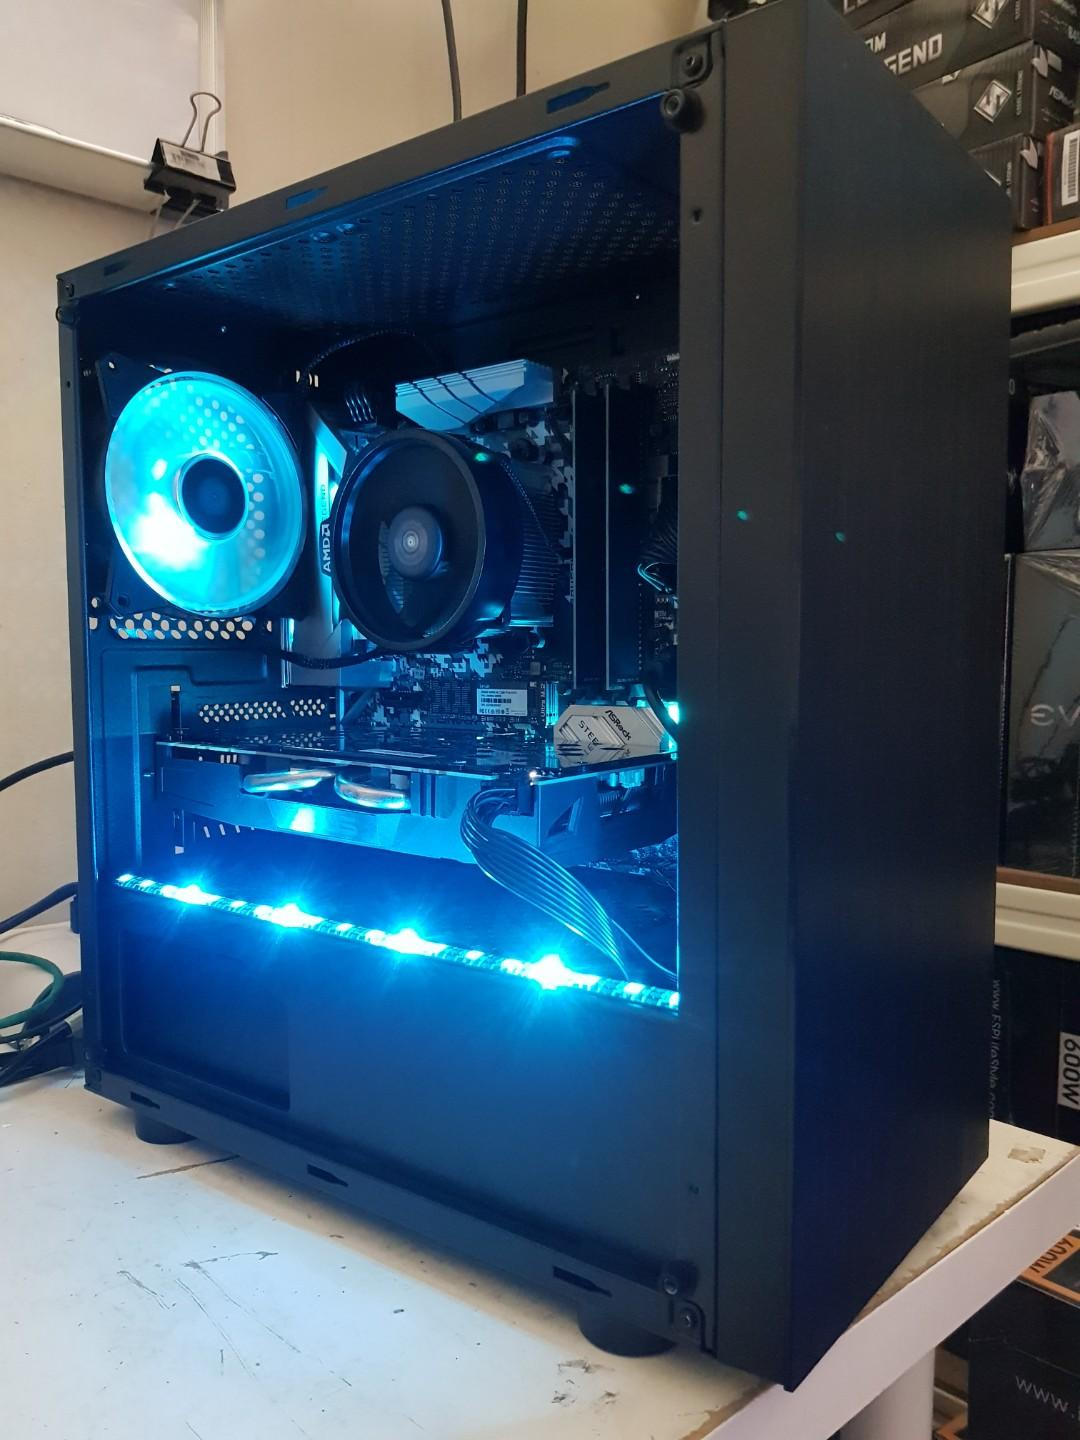 Custom Gaming PC (Ryzen 5 2600X, B450M Steel Legend, 16GB